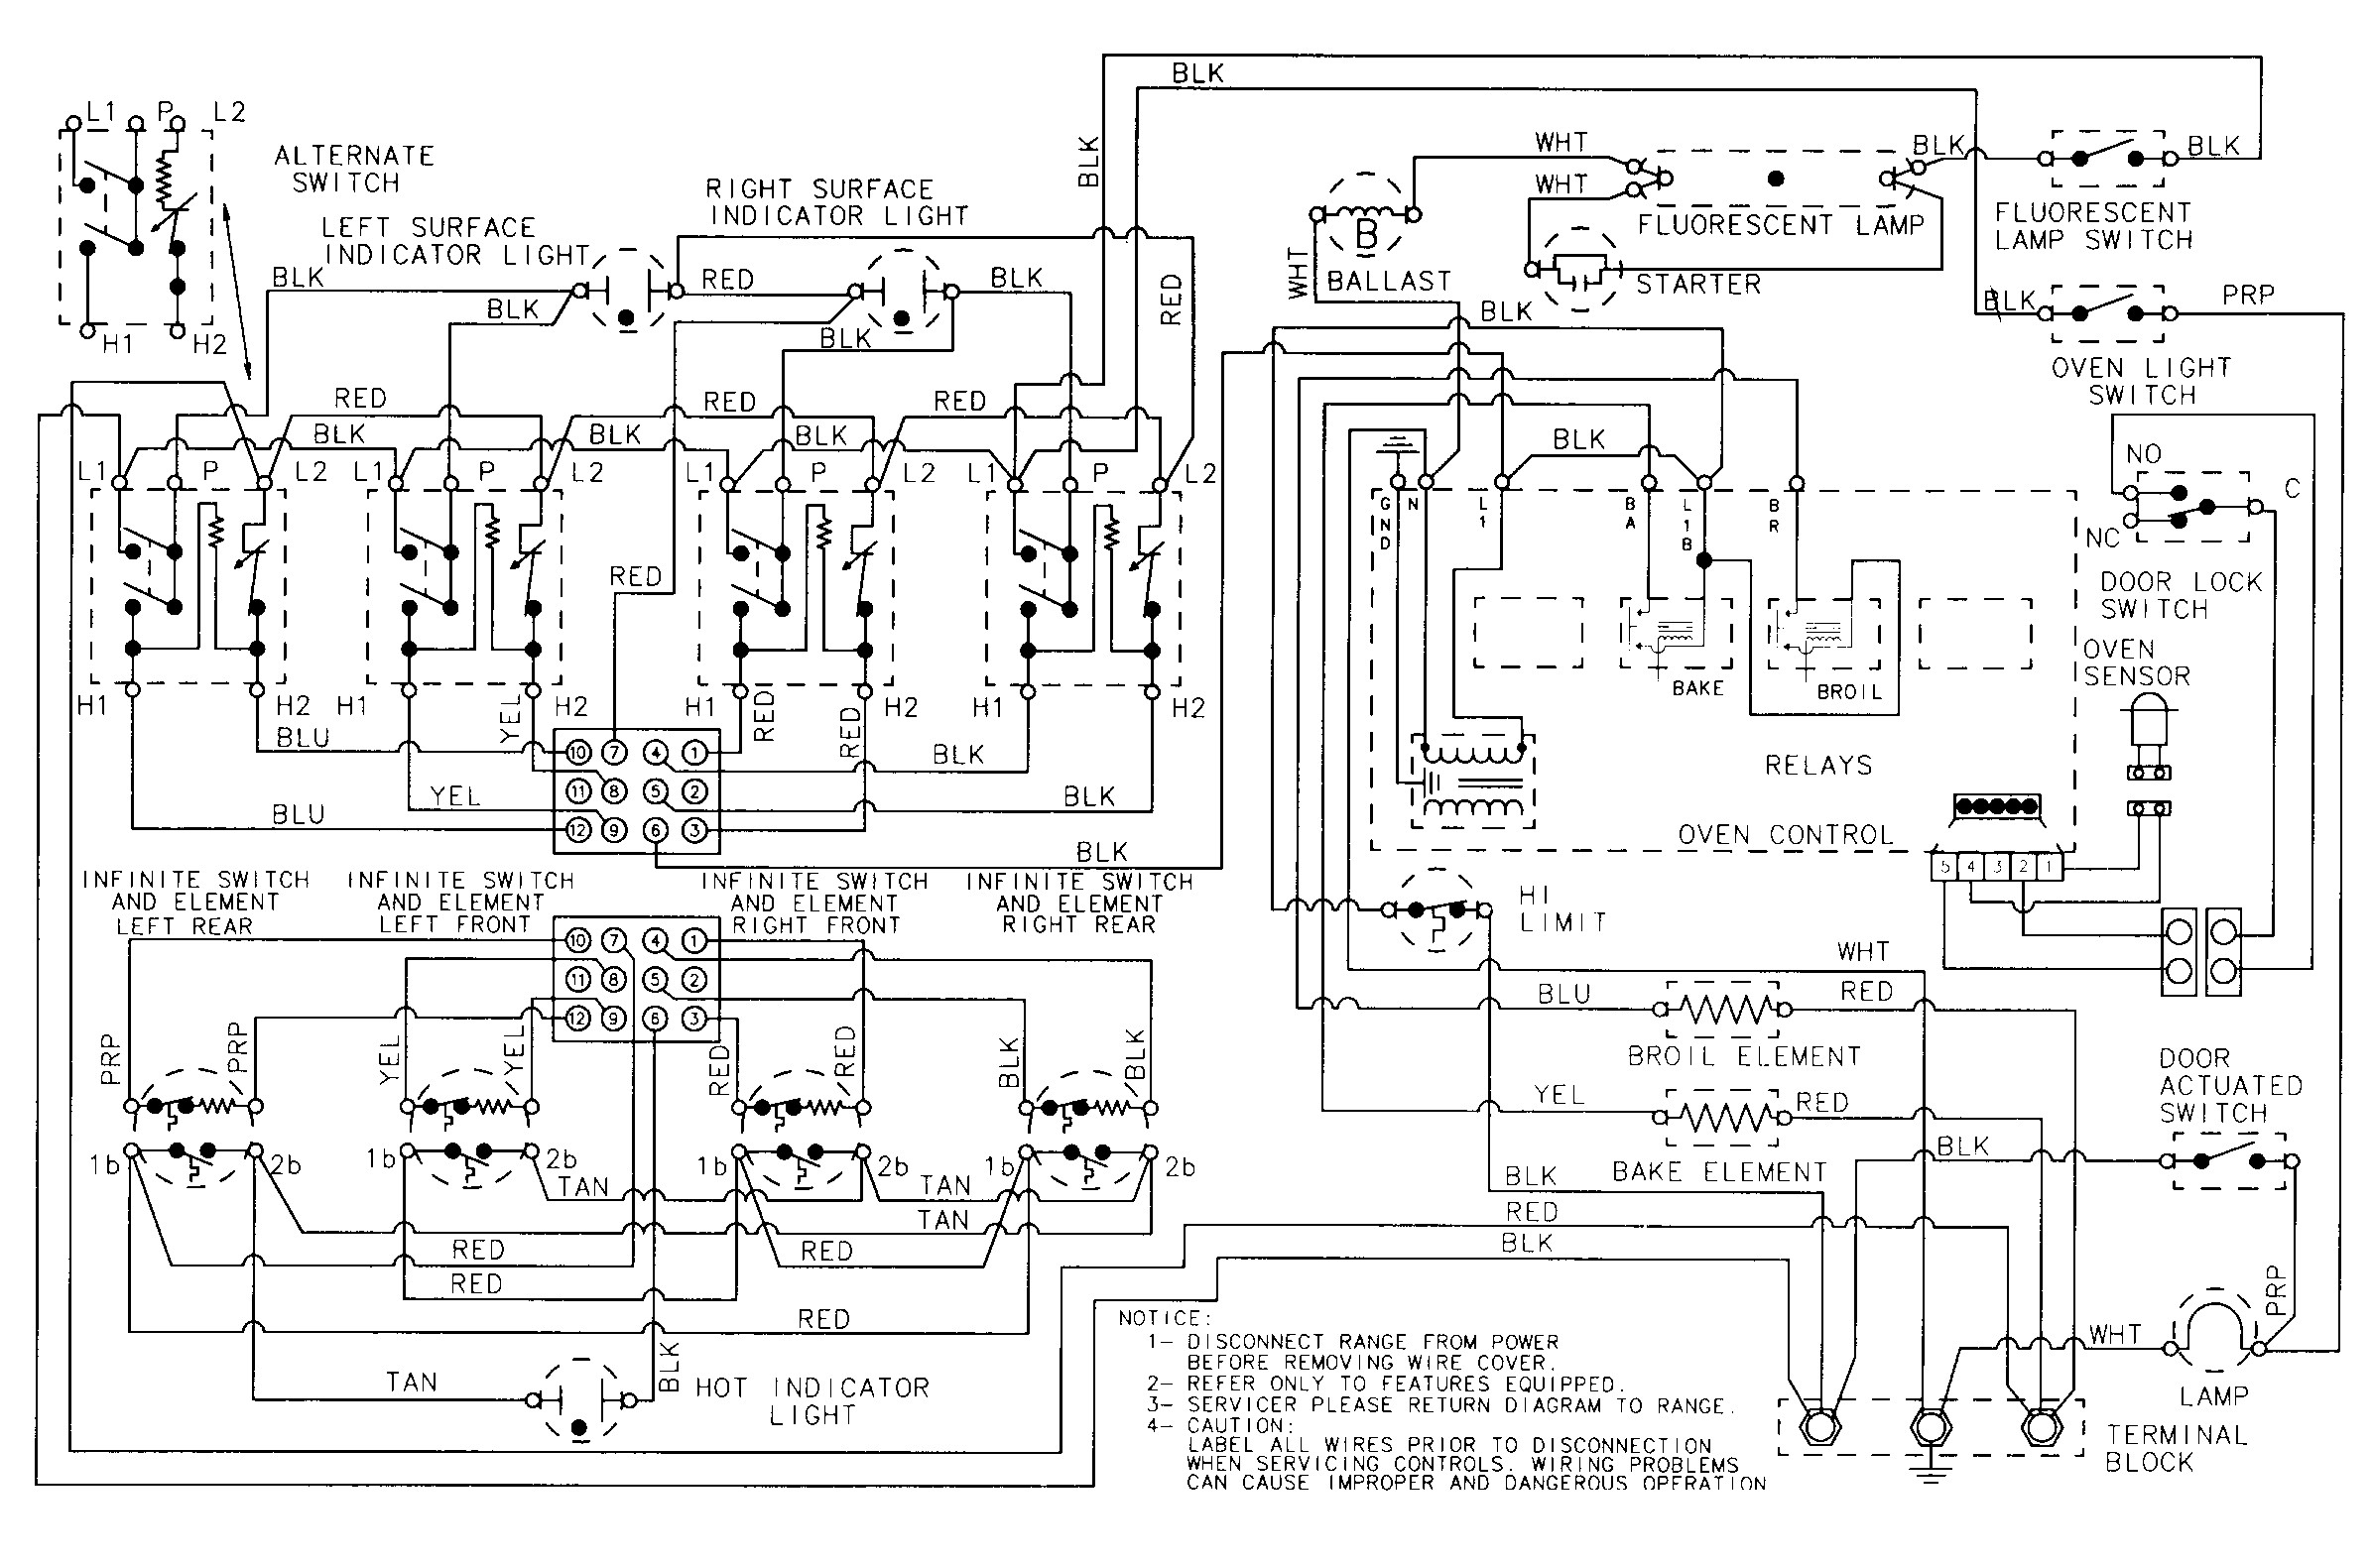 whirlpool gas dryer wiring diagram Collection-Wiring Diagram Appliance Dryer Refrence Whirlpool Gas Dryer Wiring Diagram Collection 5-l